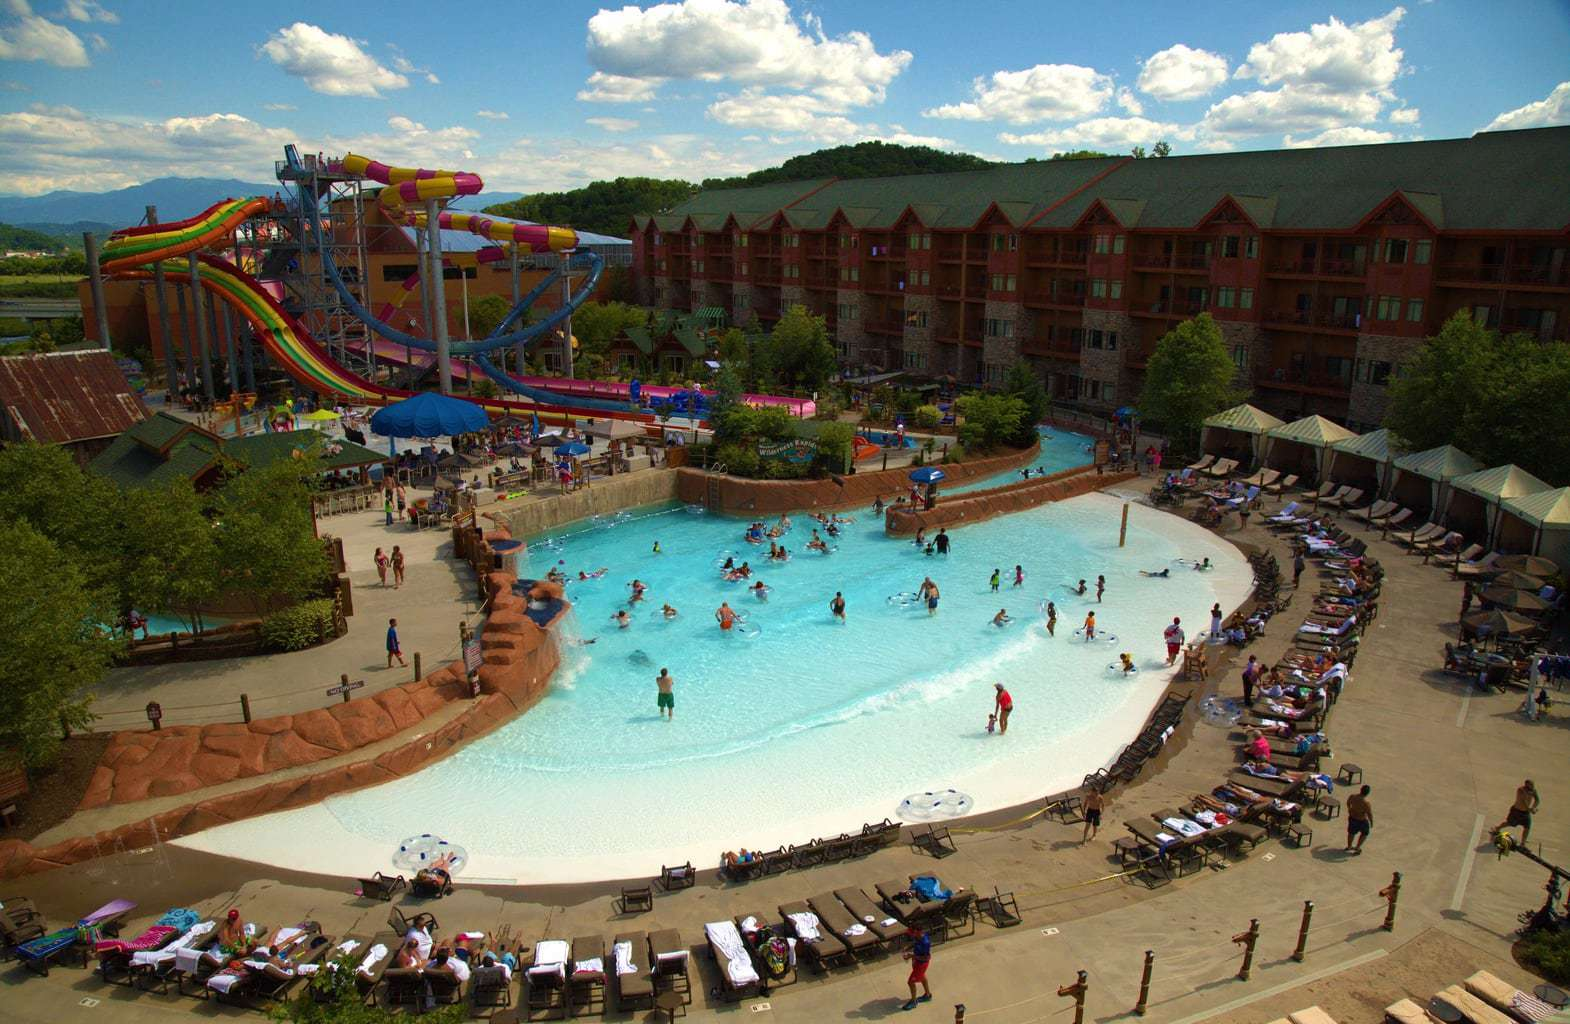 Lake Wilderness Outdoor Waterpark